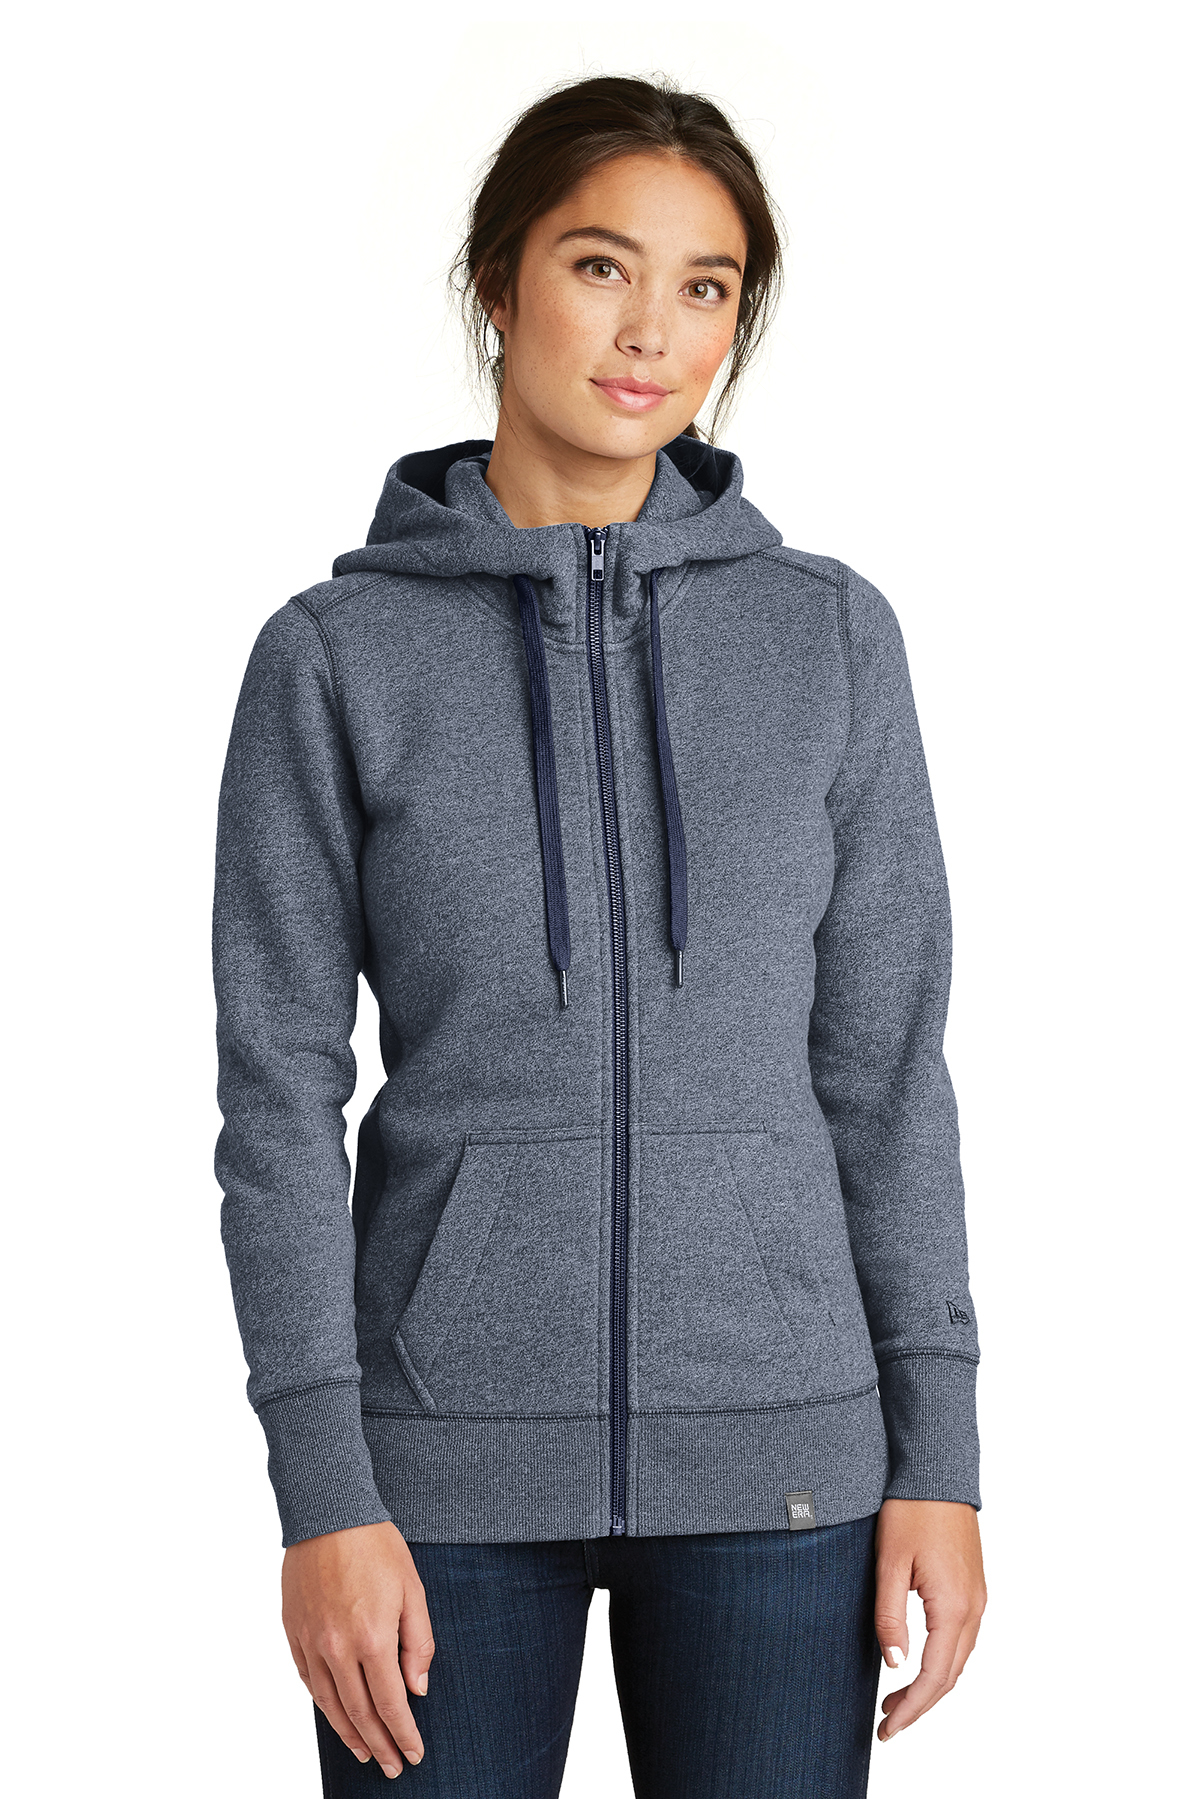 New Era LNEA502 - Ladies French Terry Full Zip Hoodie